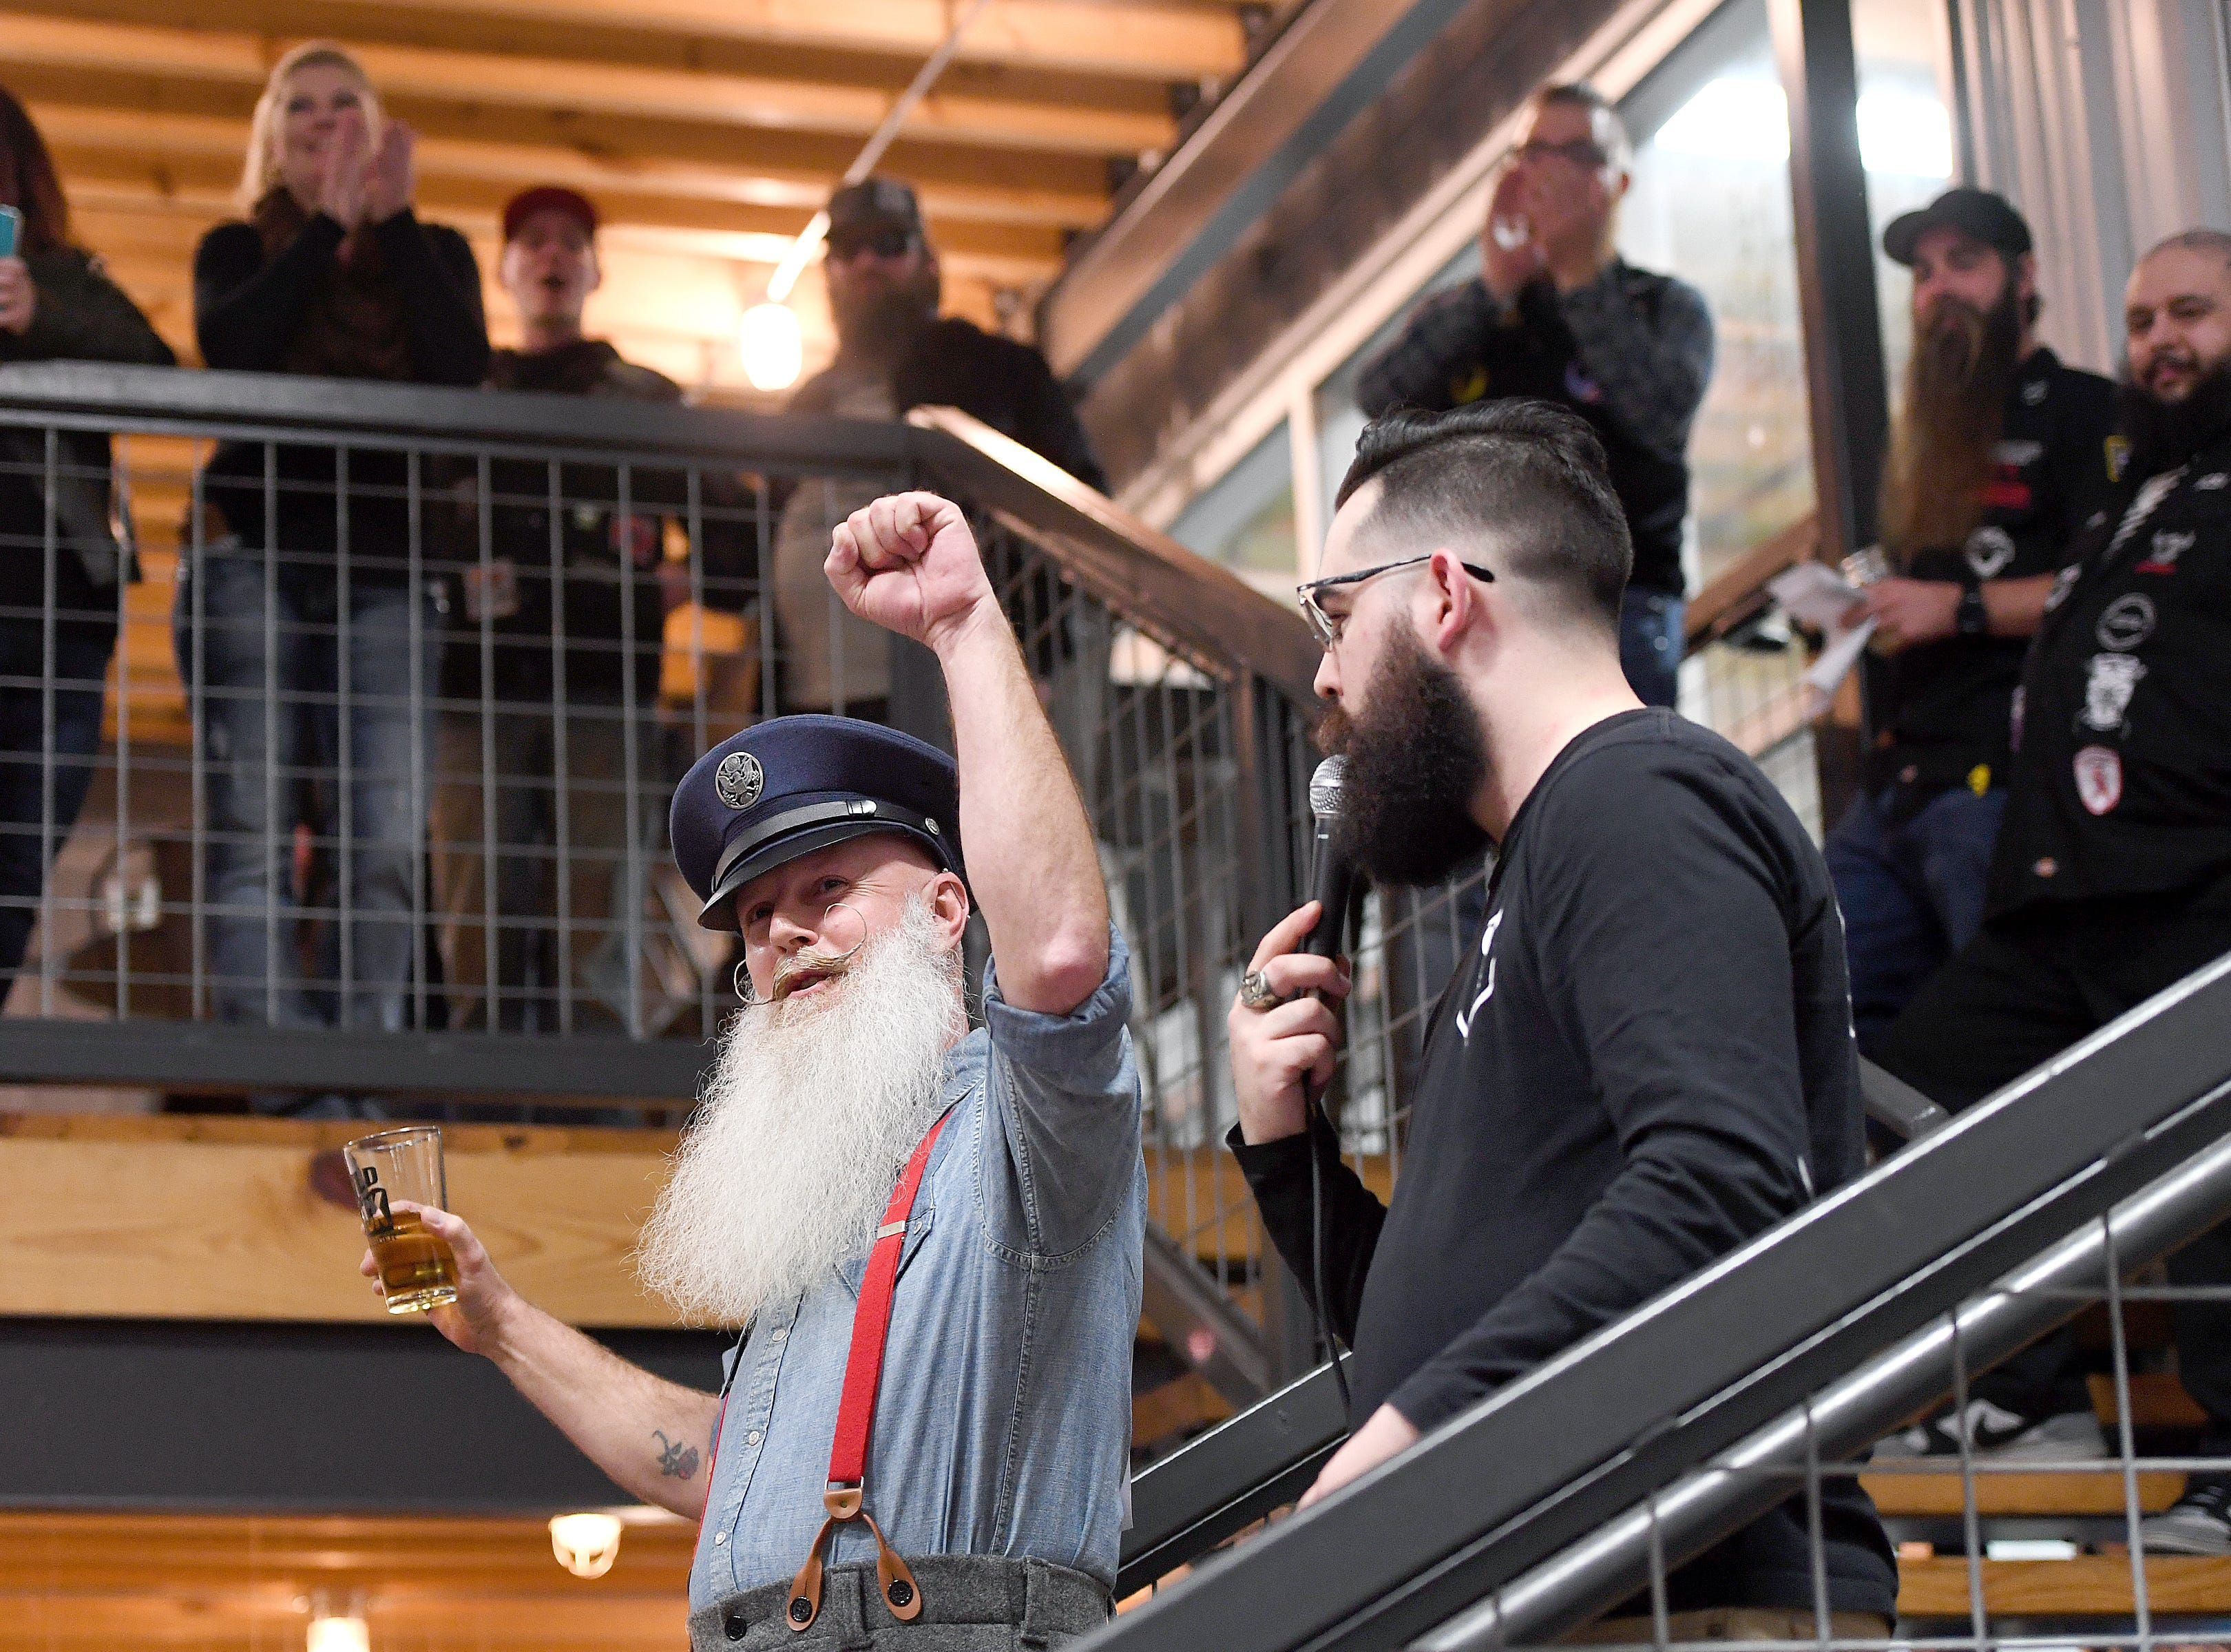 David Fender, also known as The Captain, is interviewed by Bearded Villains co-captain Chris Garcia, during the beard competition at Winter Beardfest at Bold Rock Hard Cider in Mills River on Jan. 12, 2019. Proceeds from the competition benefitted the Black Mountain Home Foster Care. Organizers are hoping to make the event annual.